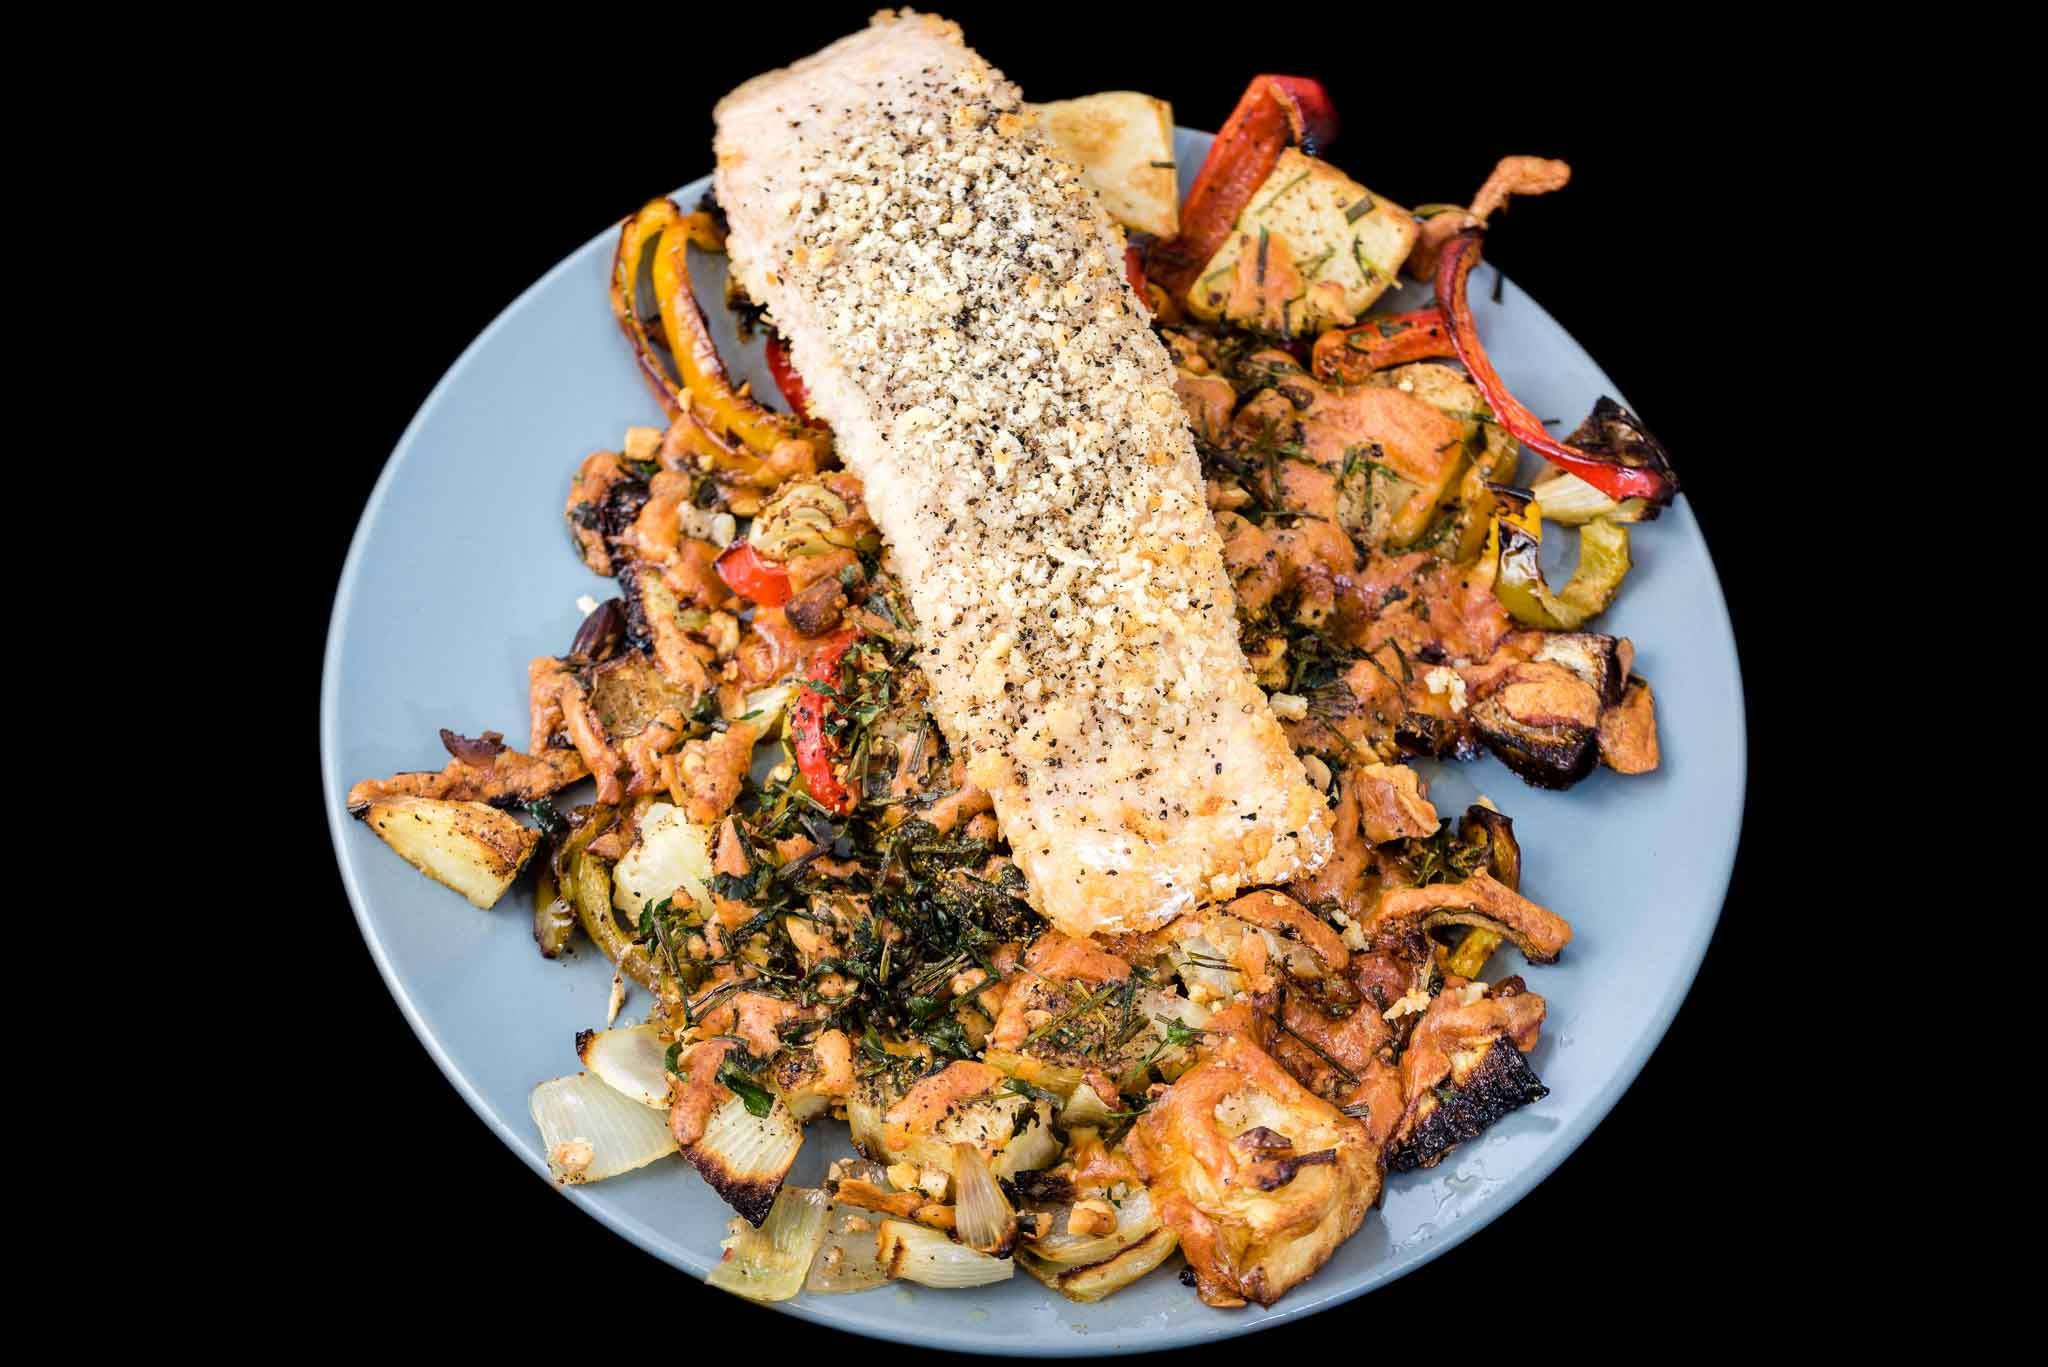 Baked panko crusted salmon with cheesy roasted red, green and yellow capsicums, onion, potato and cheese with chives and parsley